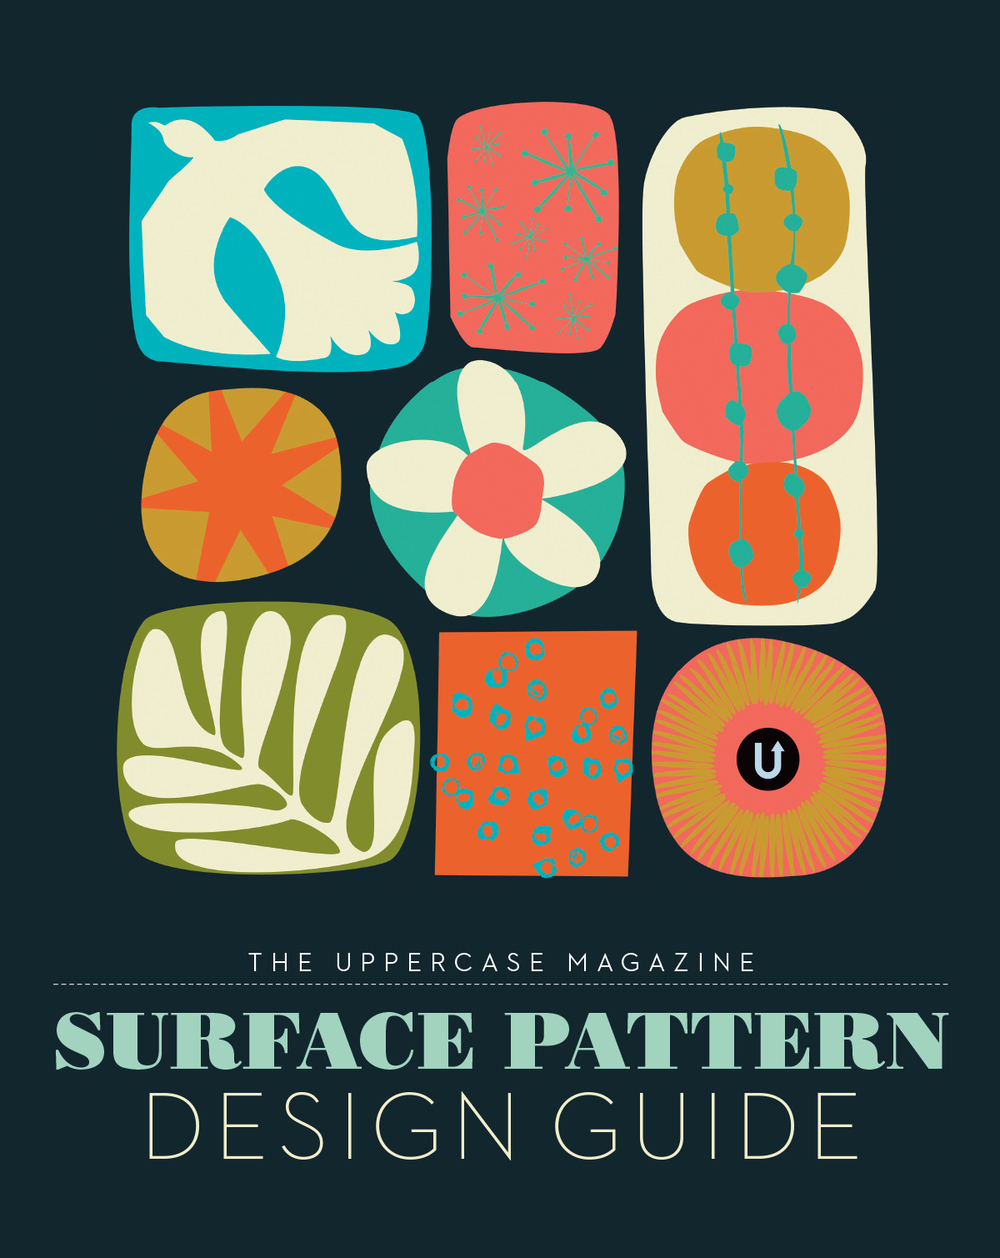 SurfacePatternCover-simple.jpg